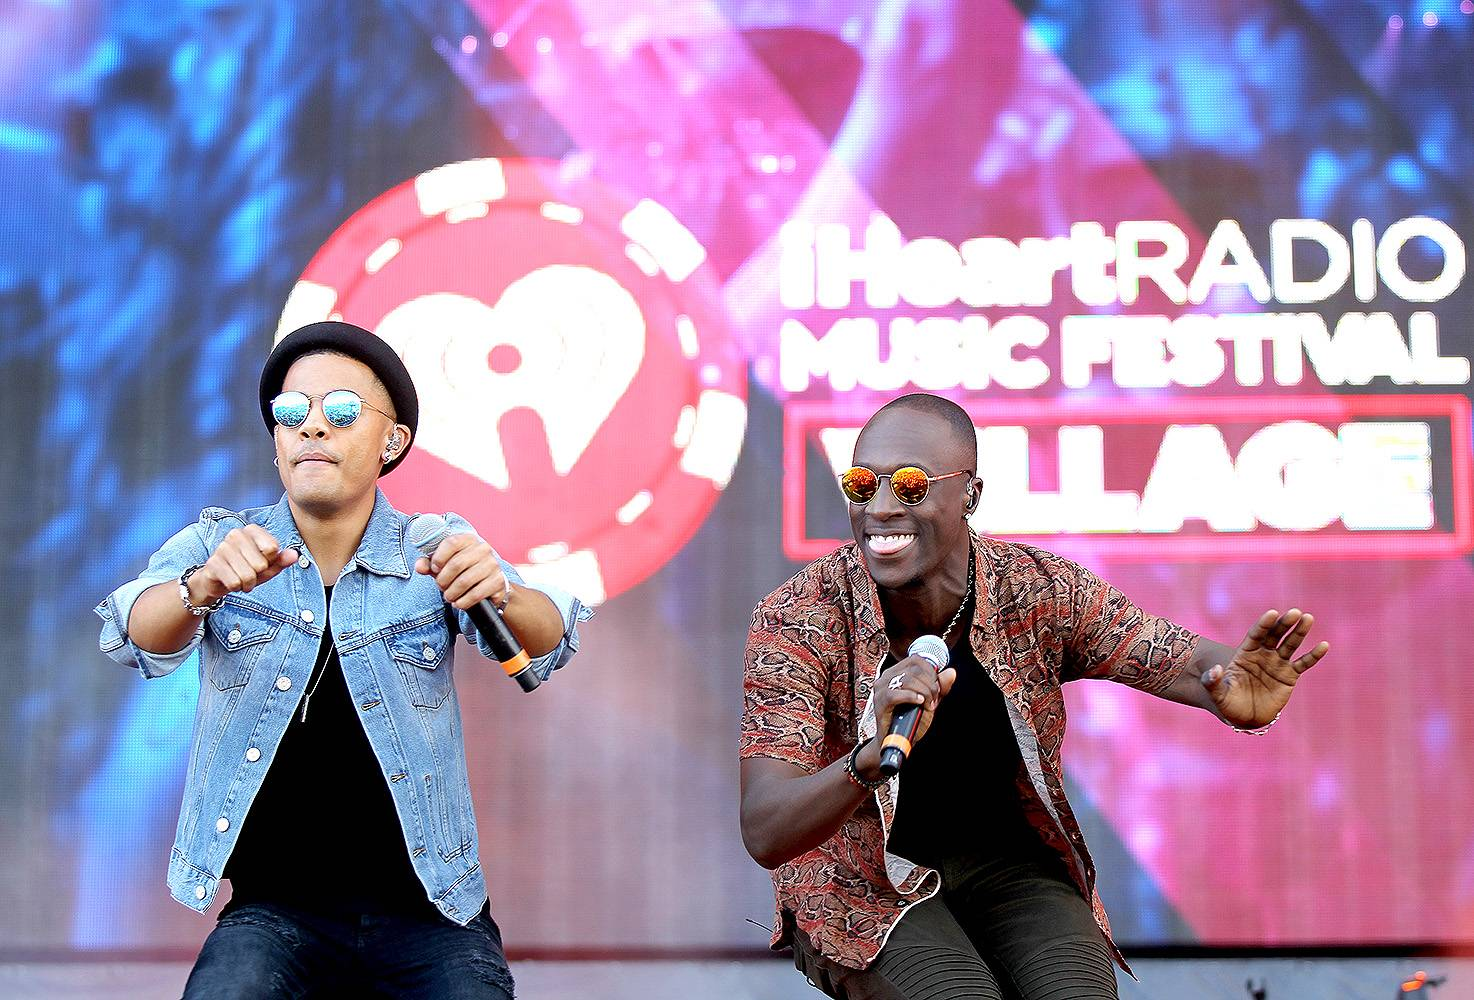 """Nico & Vinz - ?Am I Wrong? - NorweigansVincent Dery (L) and Nicolas Sereba of Nico & Vinz seemingly took over the music world with their crossover smash single """"Am I Wrong."""" Nothing wrong about the impact of this song.(Photo: Isaac Brekken/Getty Images for iHeartMedia)"""